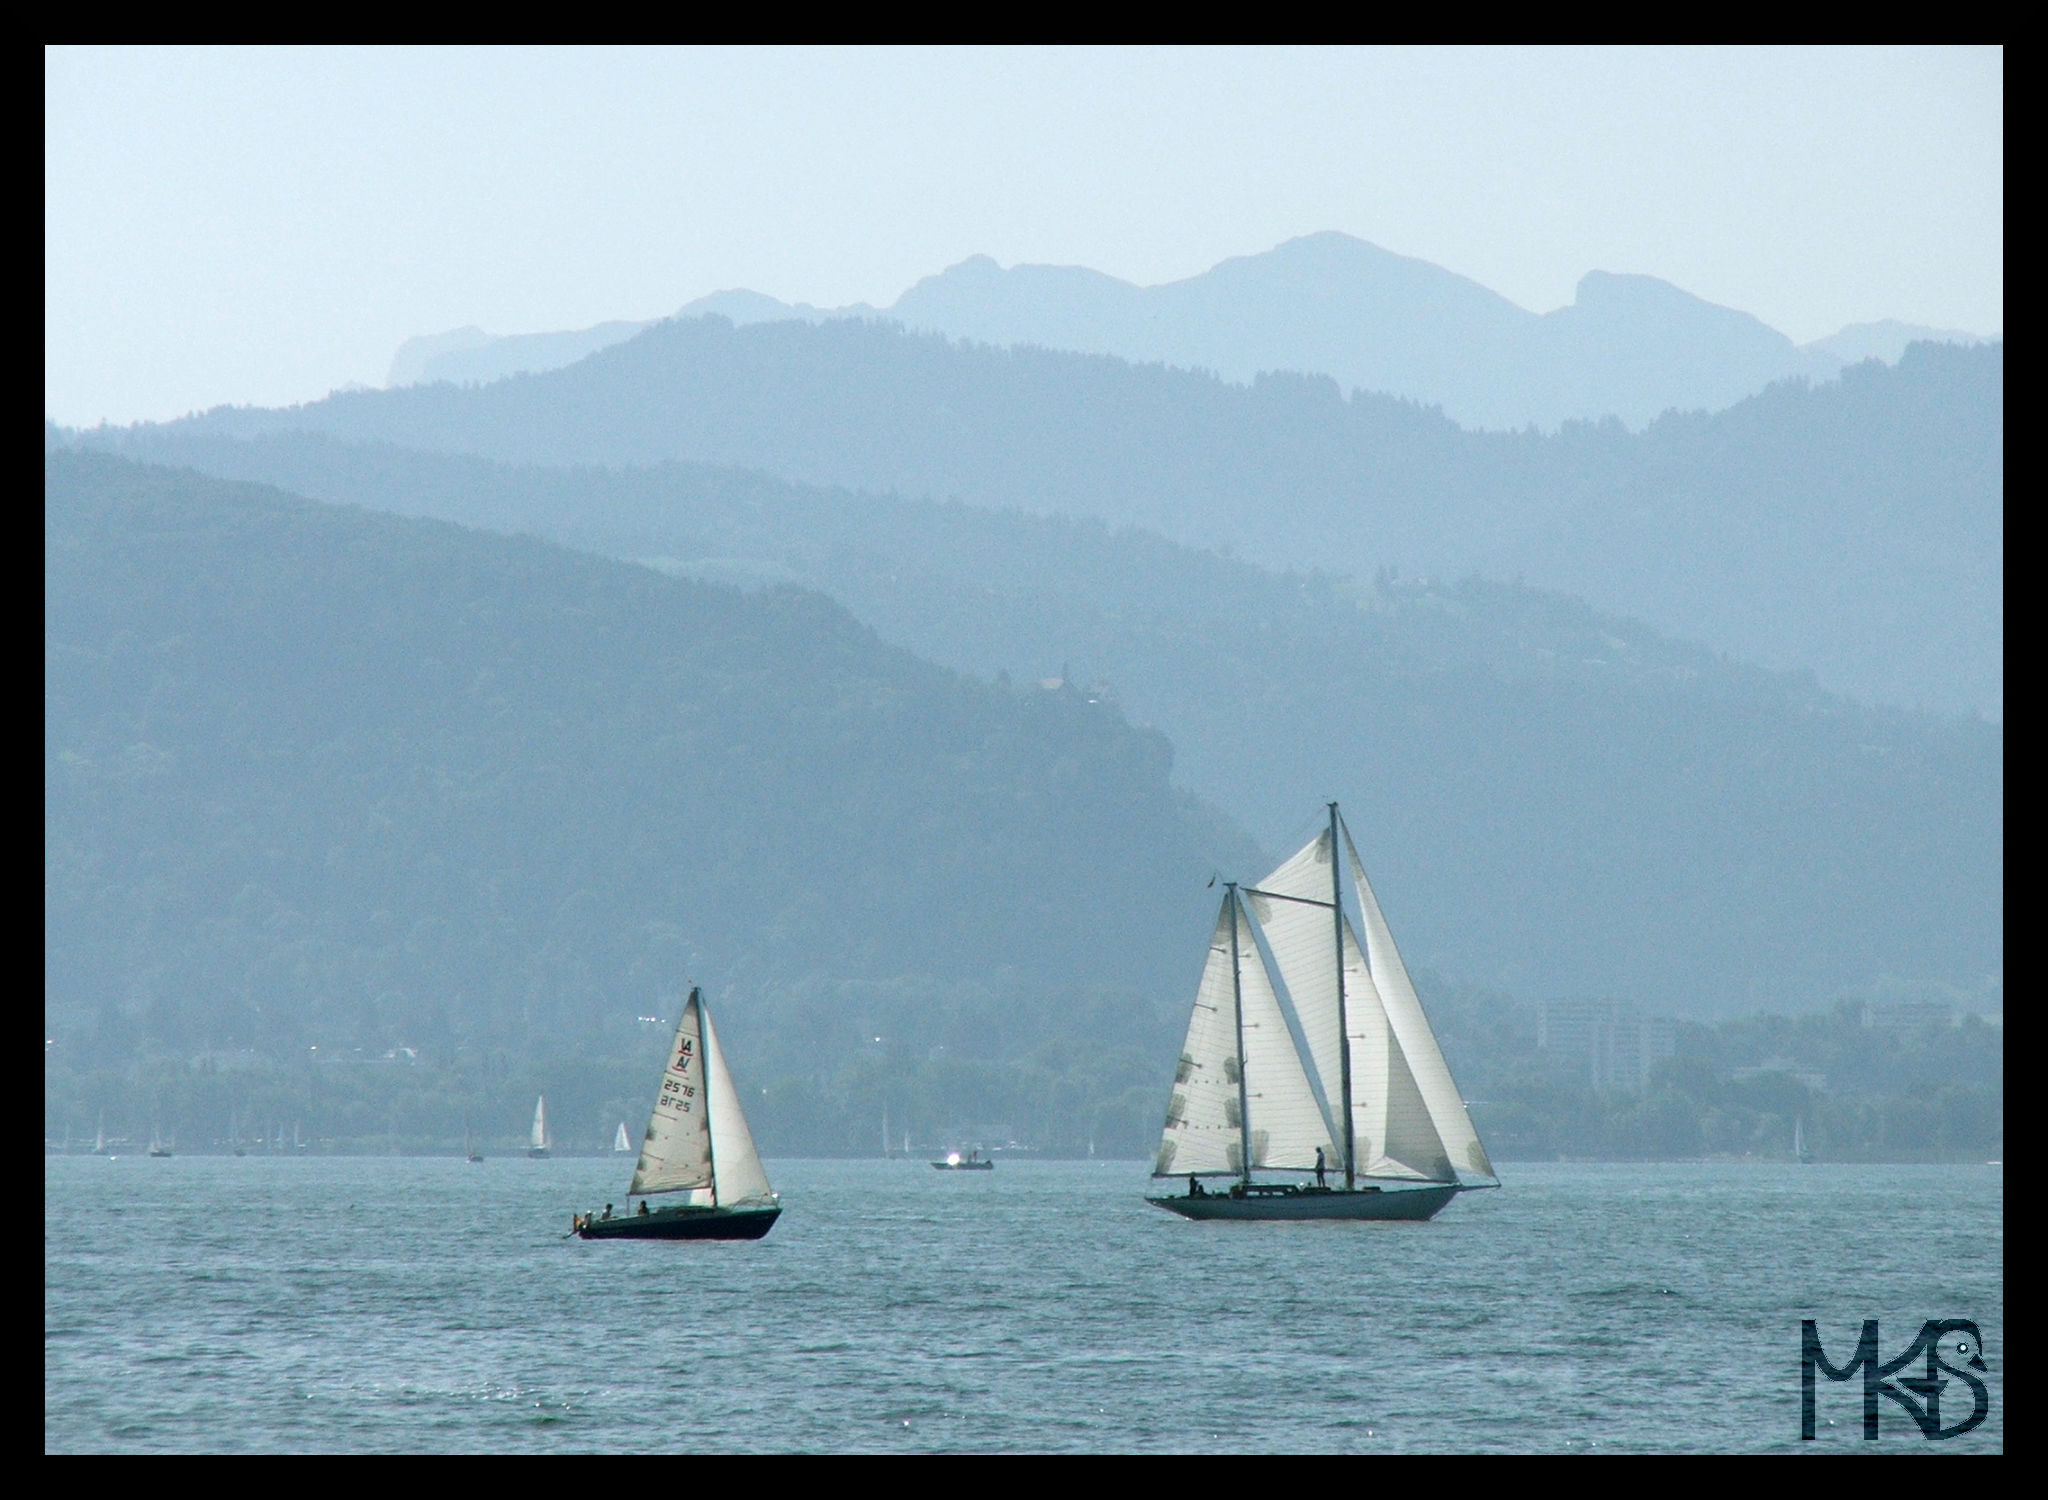 Bodensee (Lake Constance), Germany